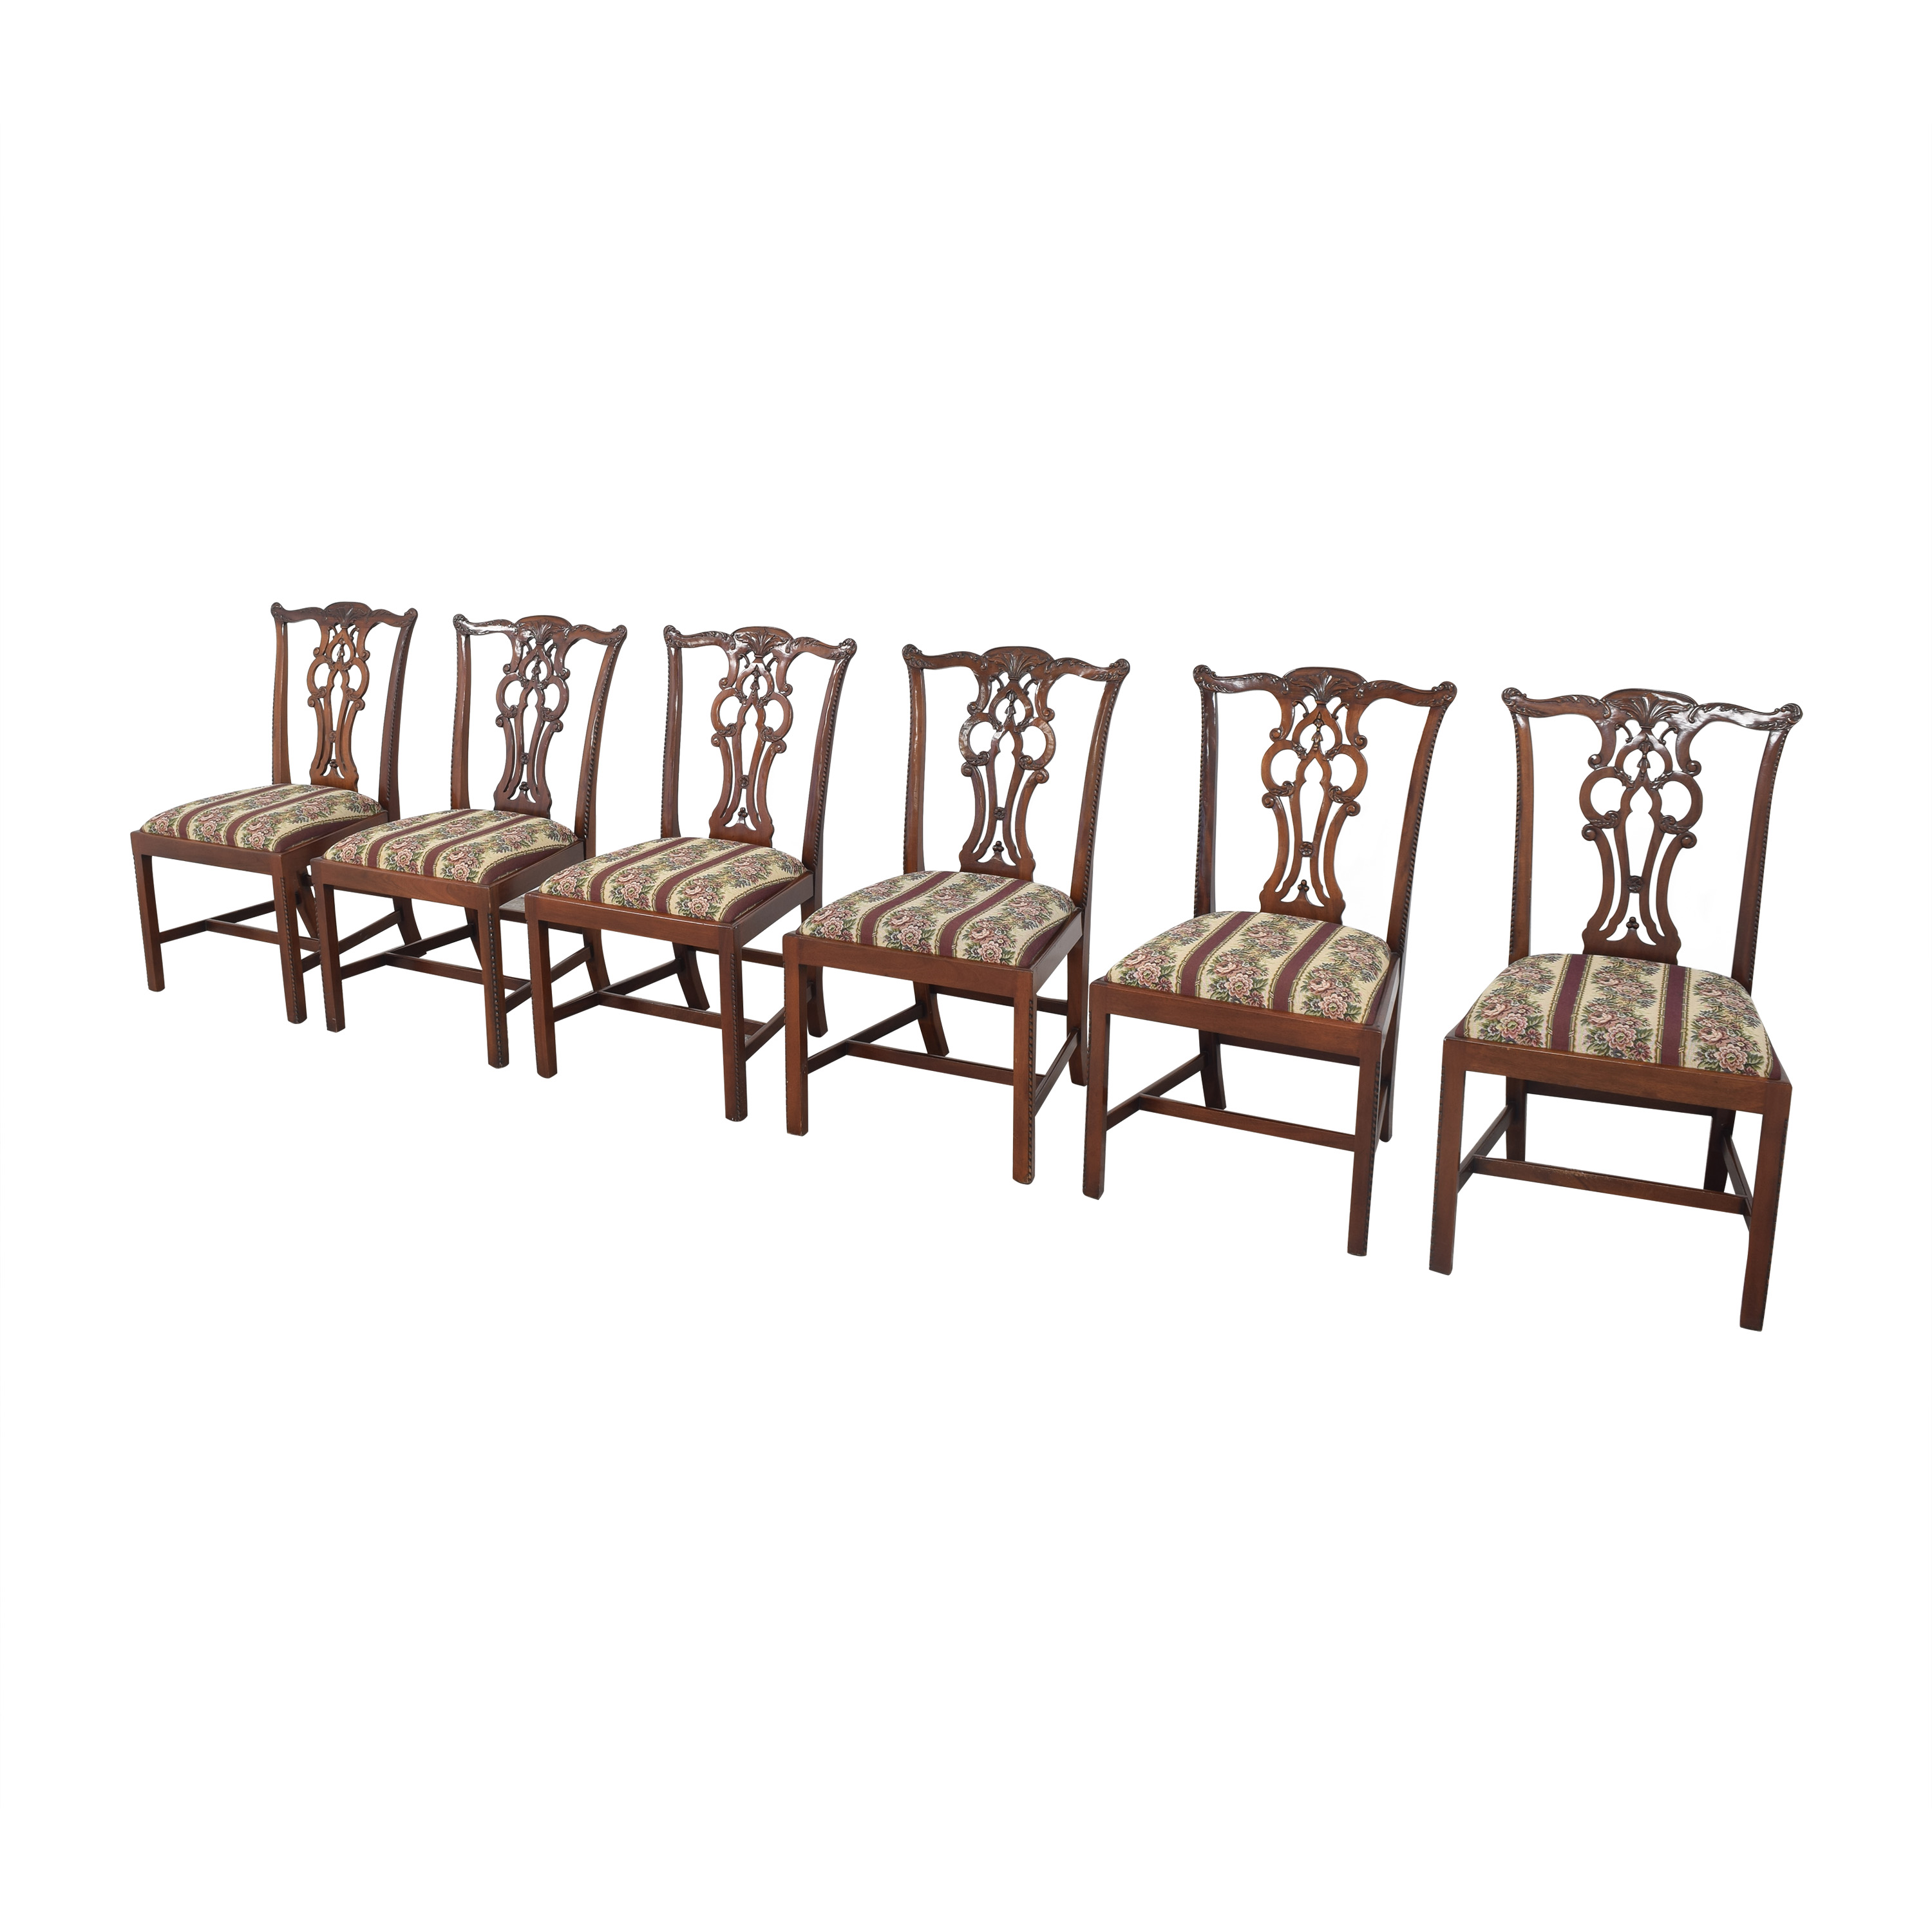 Maitland-Smith Maitland-Smith Chippendale Upholstered Dining Chairs price